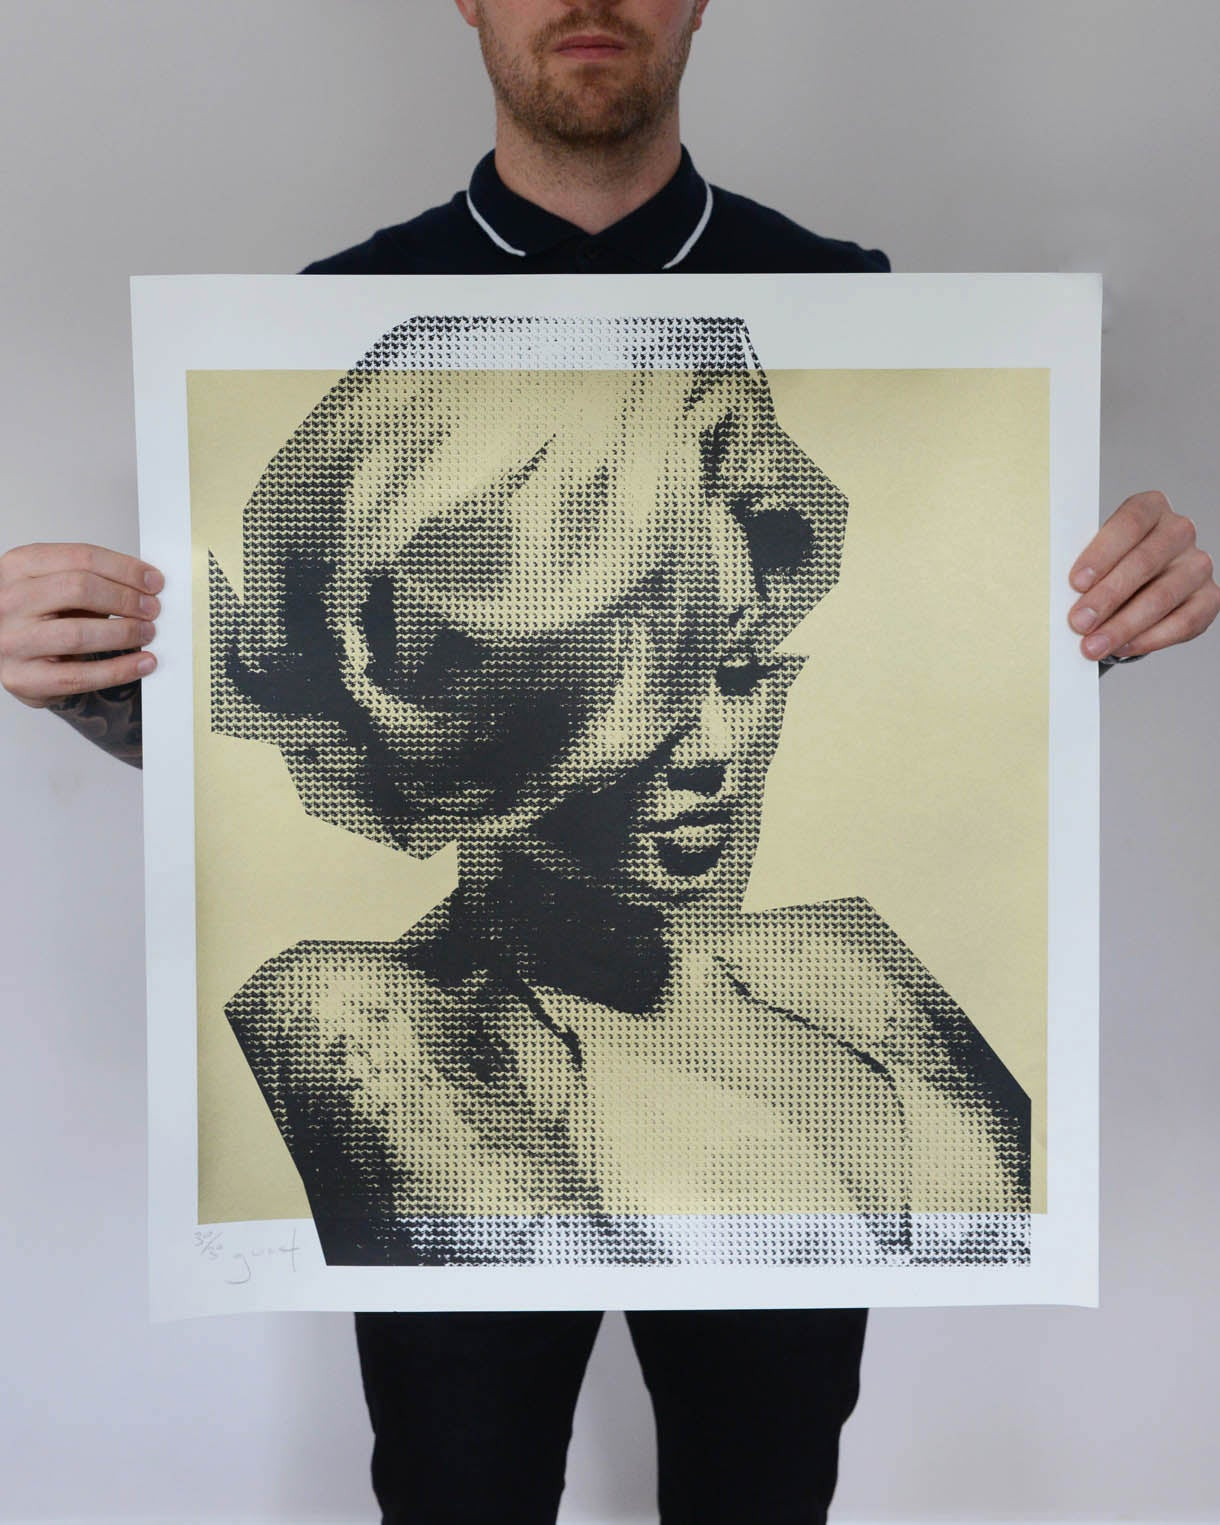 Image of Extremely Limited Hand Pulled Screen Print 'Becky Gold Edition'